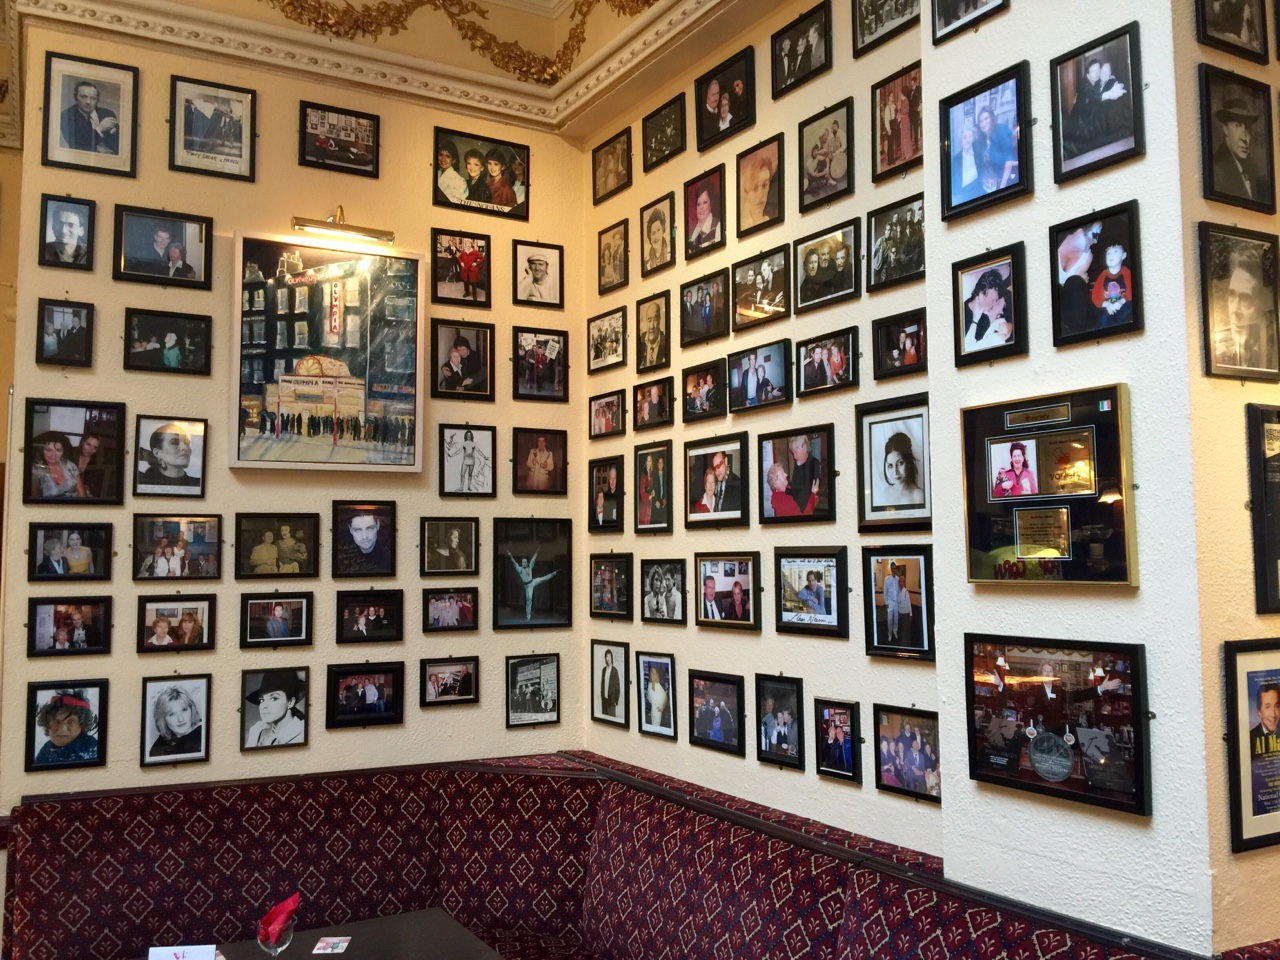 Maureen's Bar - Dublin, Ireland    Hidden in the back of the Olympia Theatre in Dublin is Maureen's bar. Catering to all sorts for seventy years, Maureen can still be seen on the premises. Make sure to buy a drink and say hi if you're nearby!